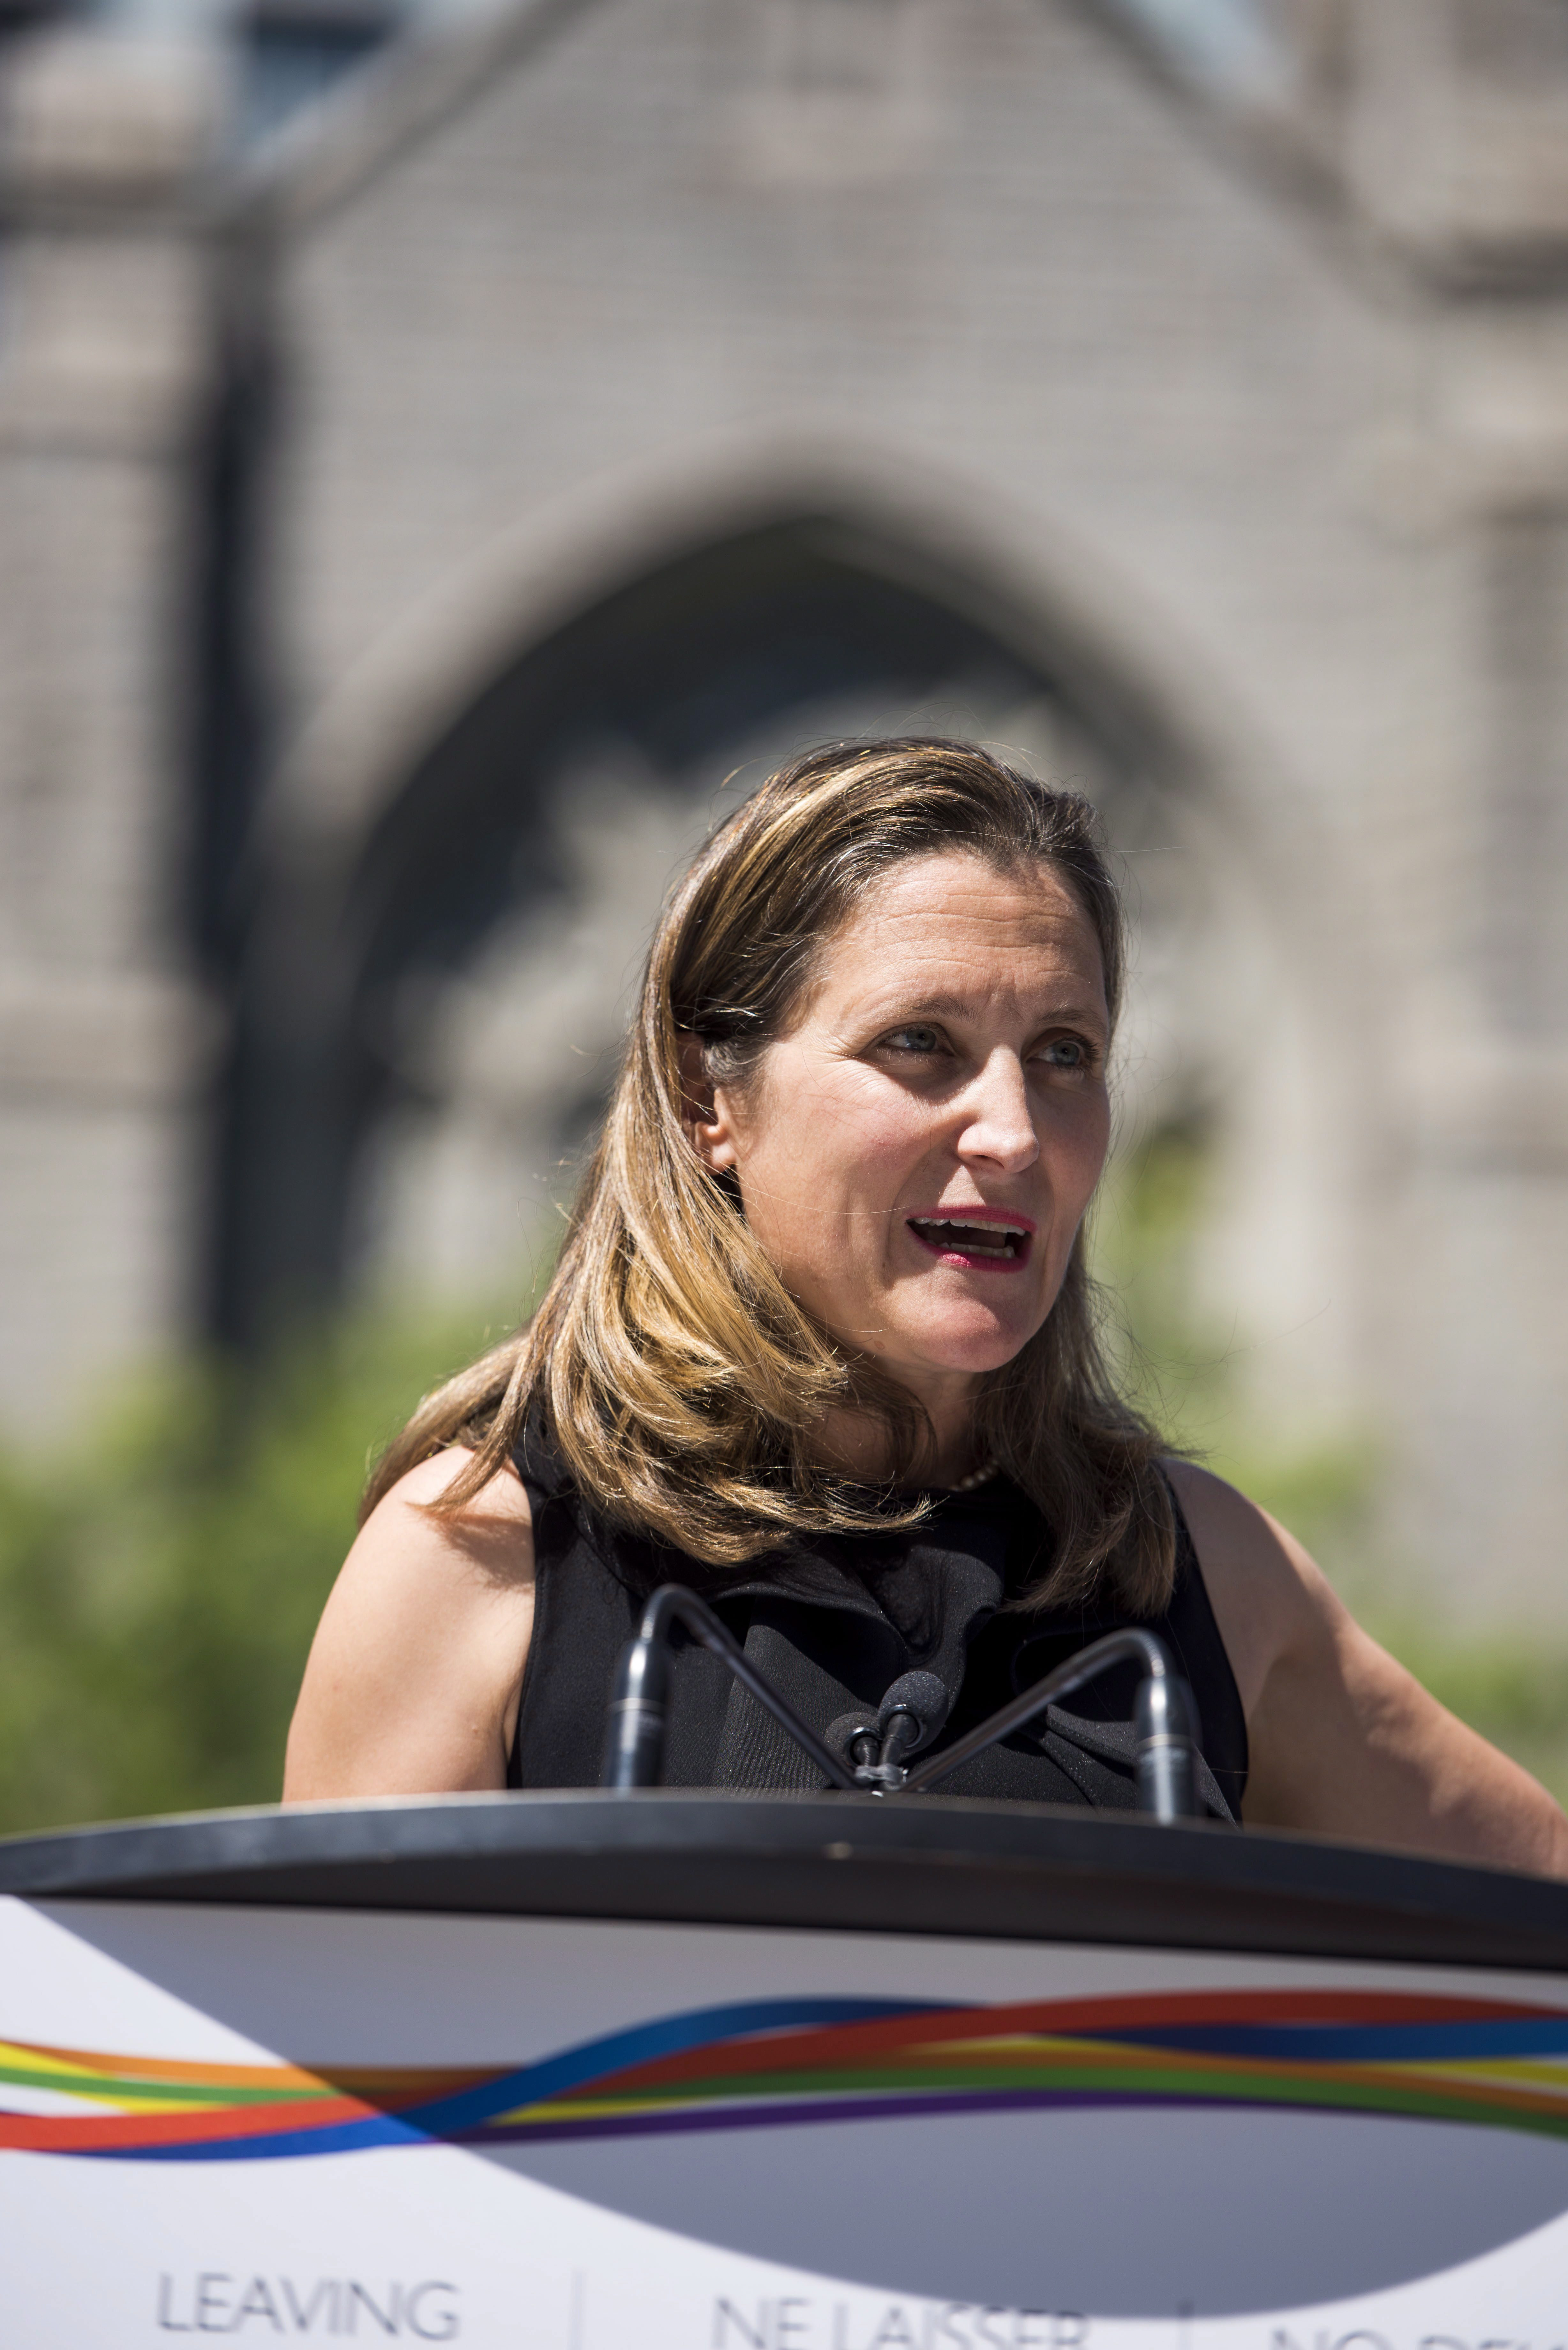 Foreign Affairs Minister Chrystia Freeland speaks at a press conference in Vancouver, B.C. on